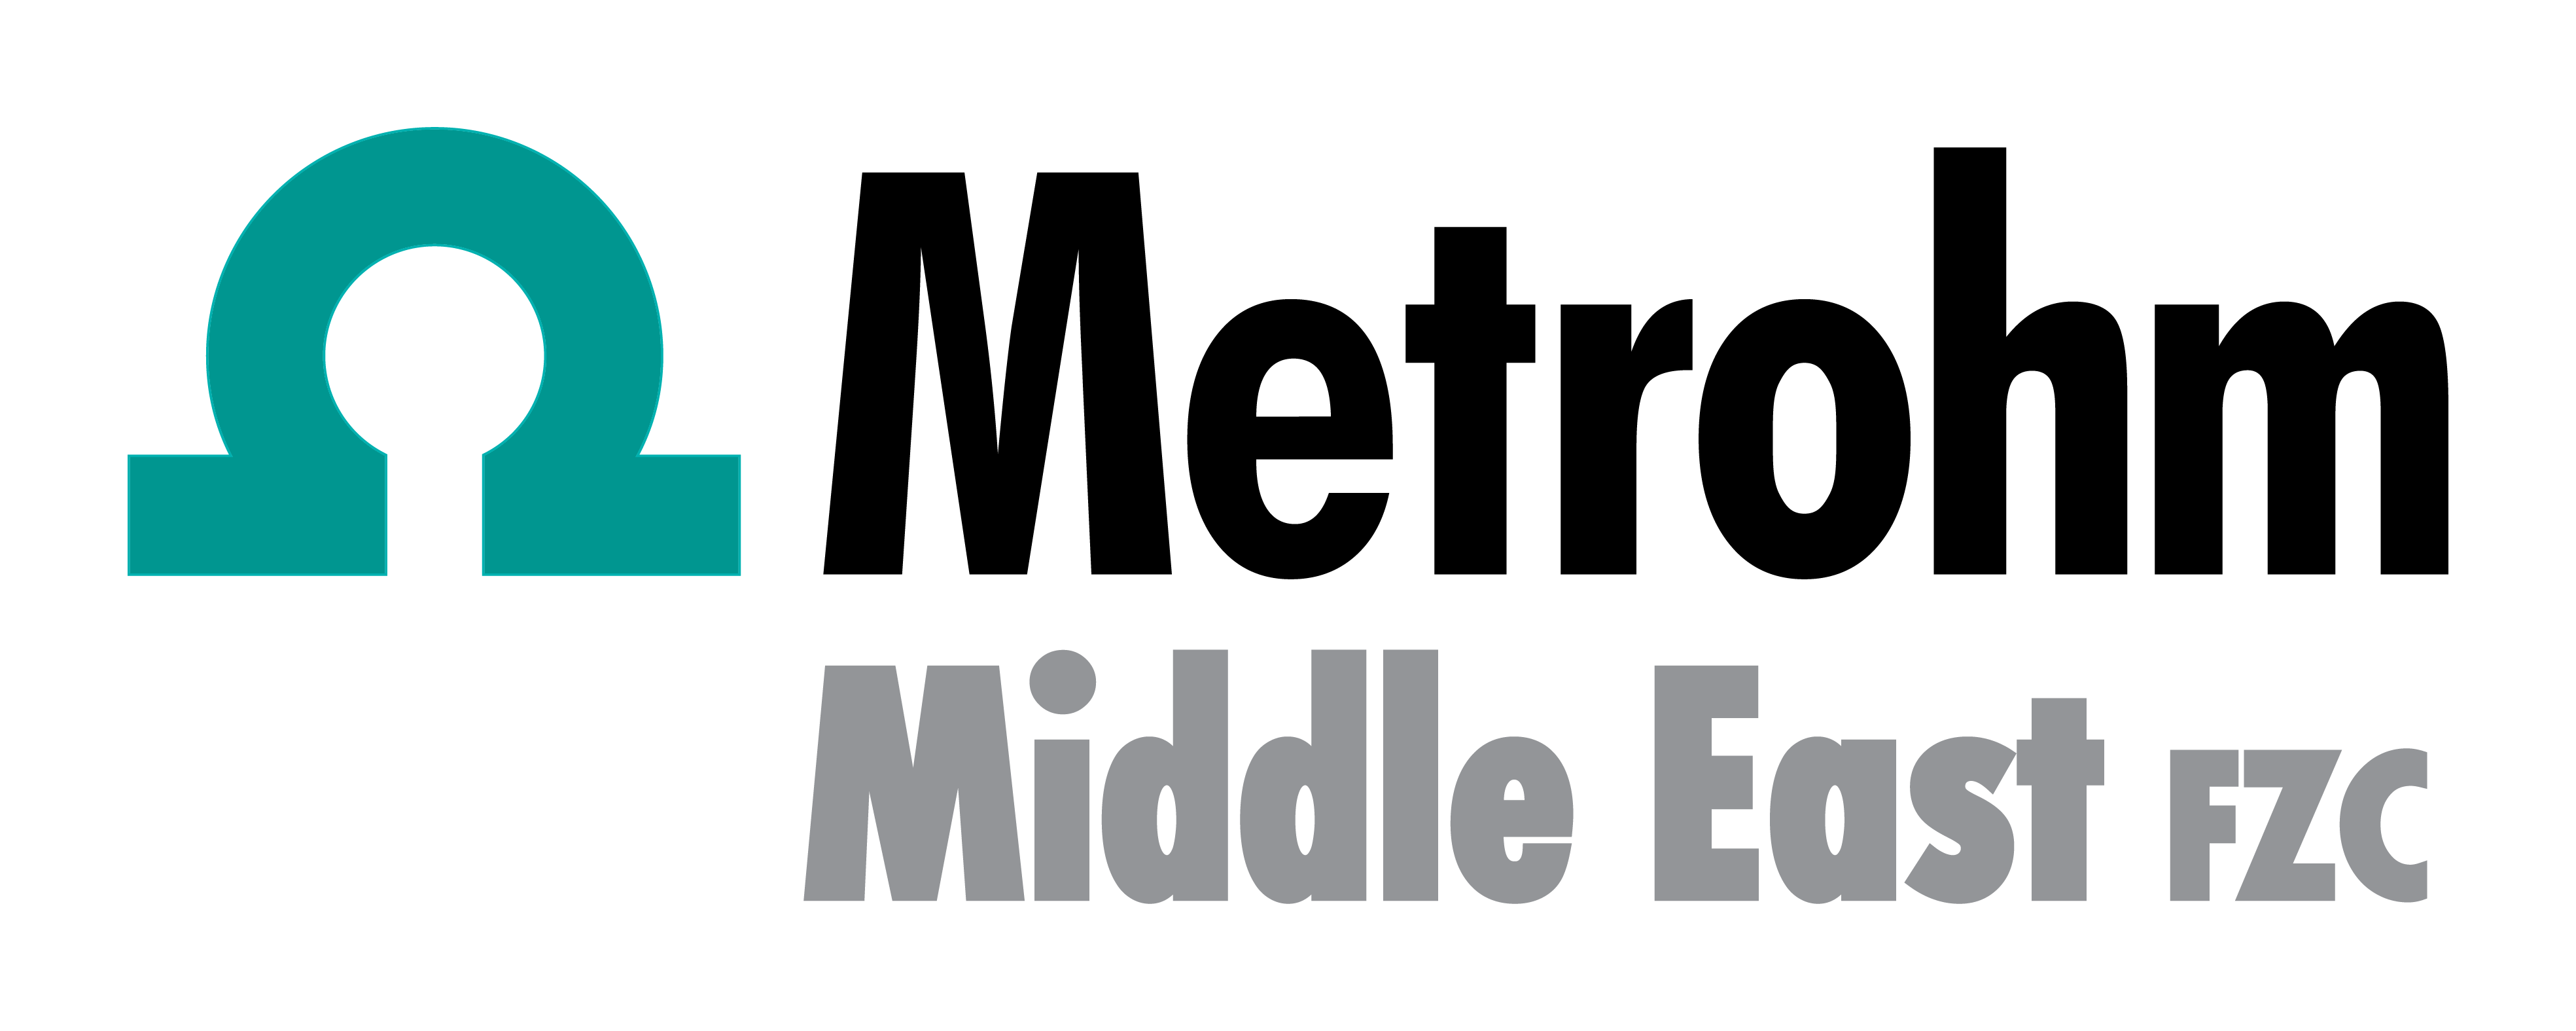 Metrohm Middle East FZC